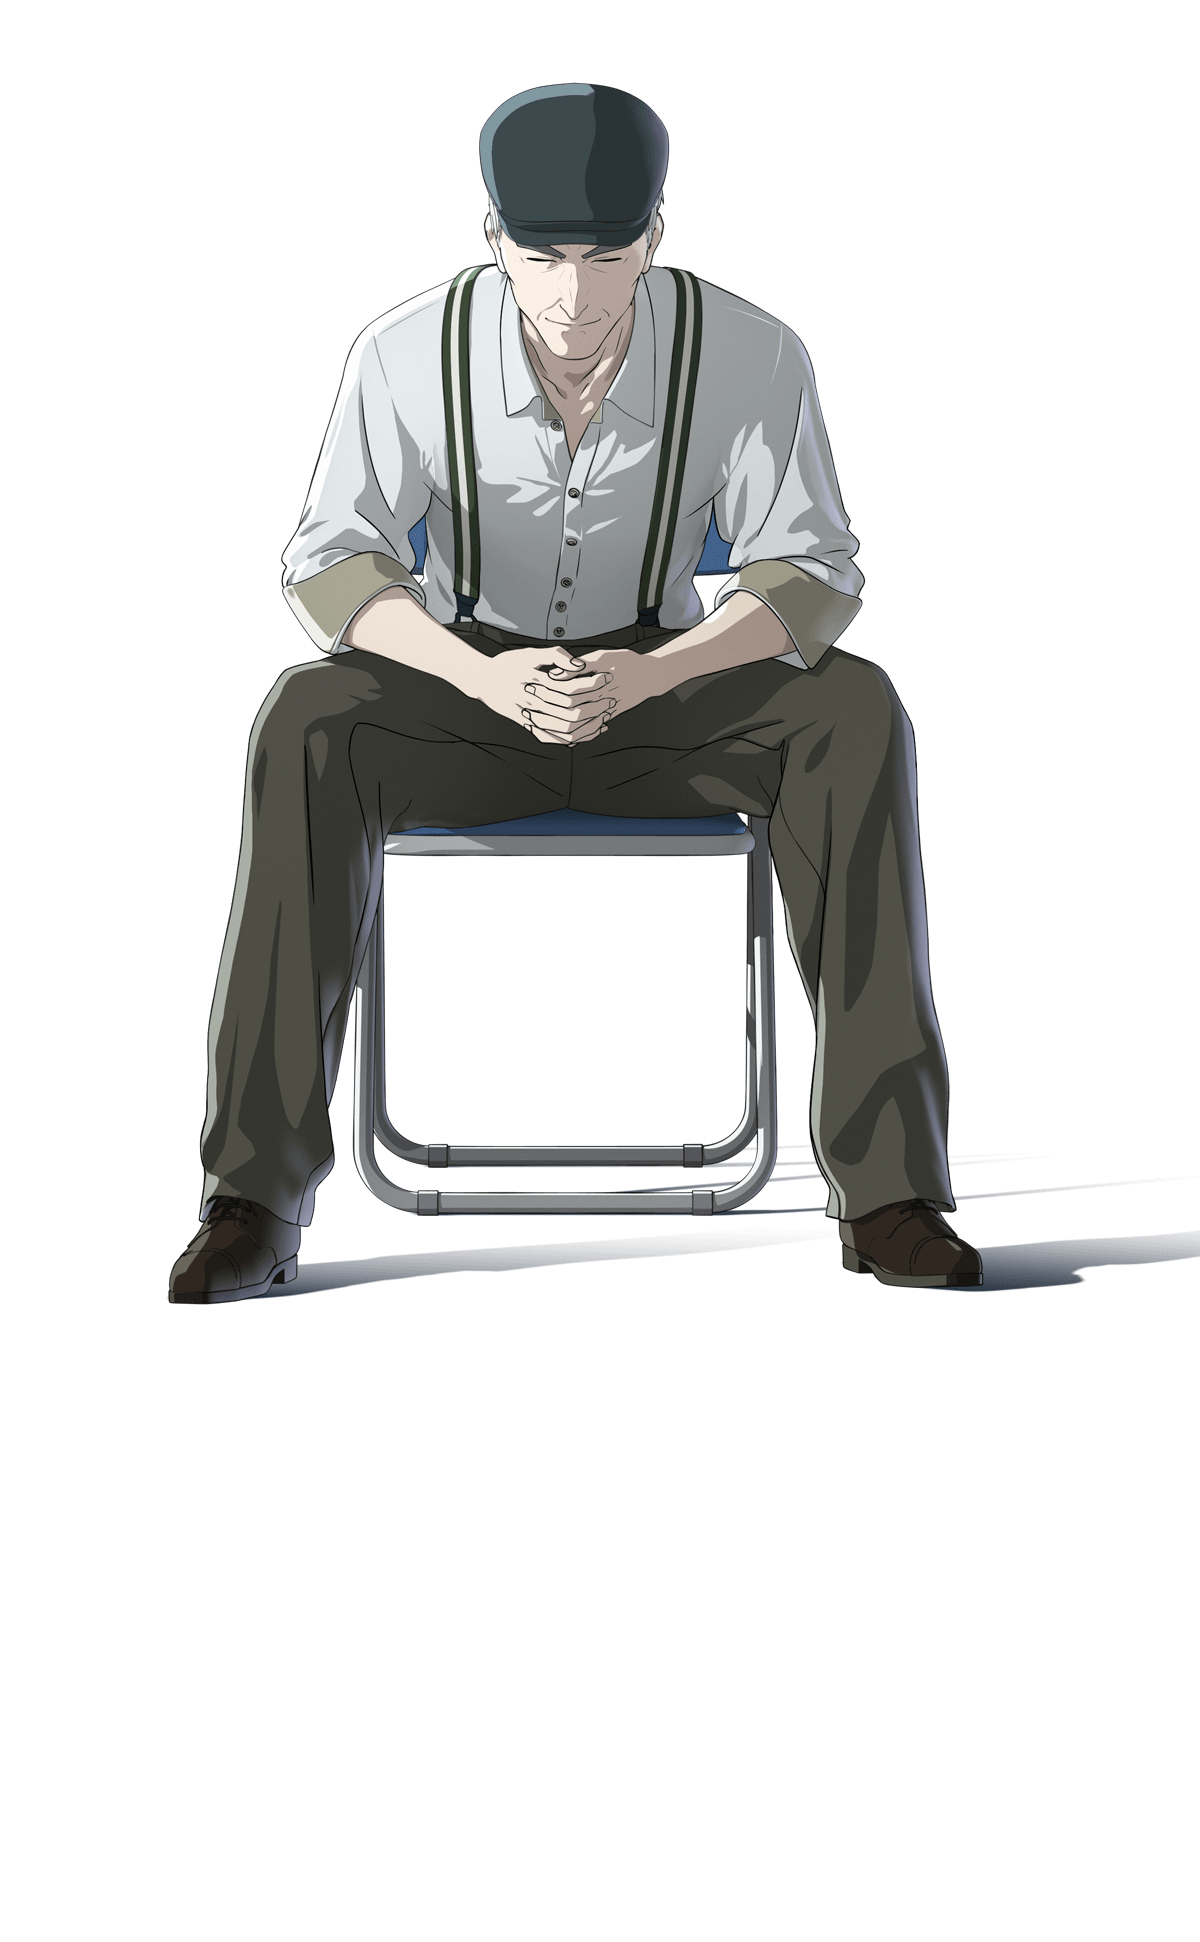 Anime Sitting On Chair Ajin | page 2 of 3 - Z...